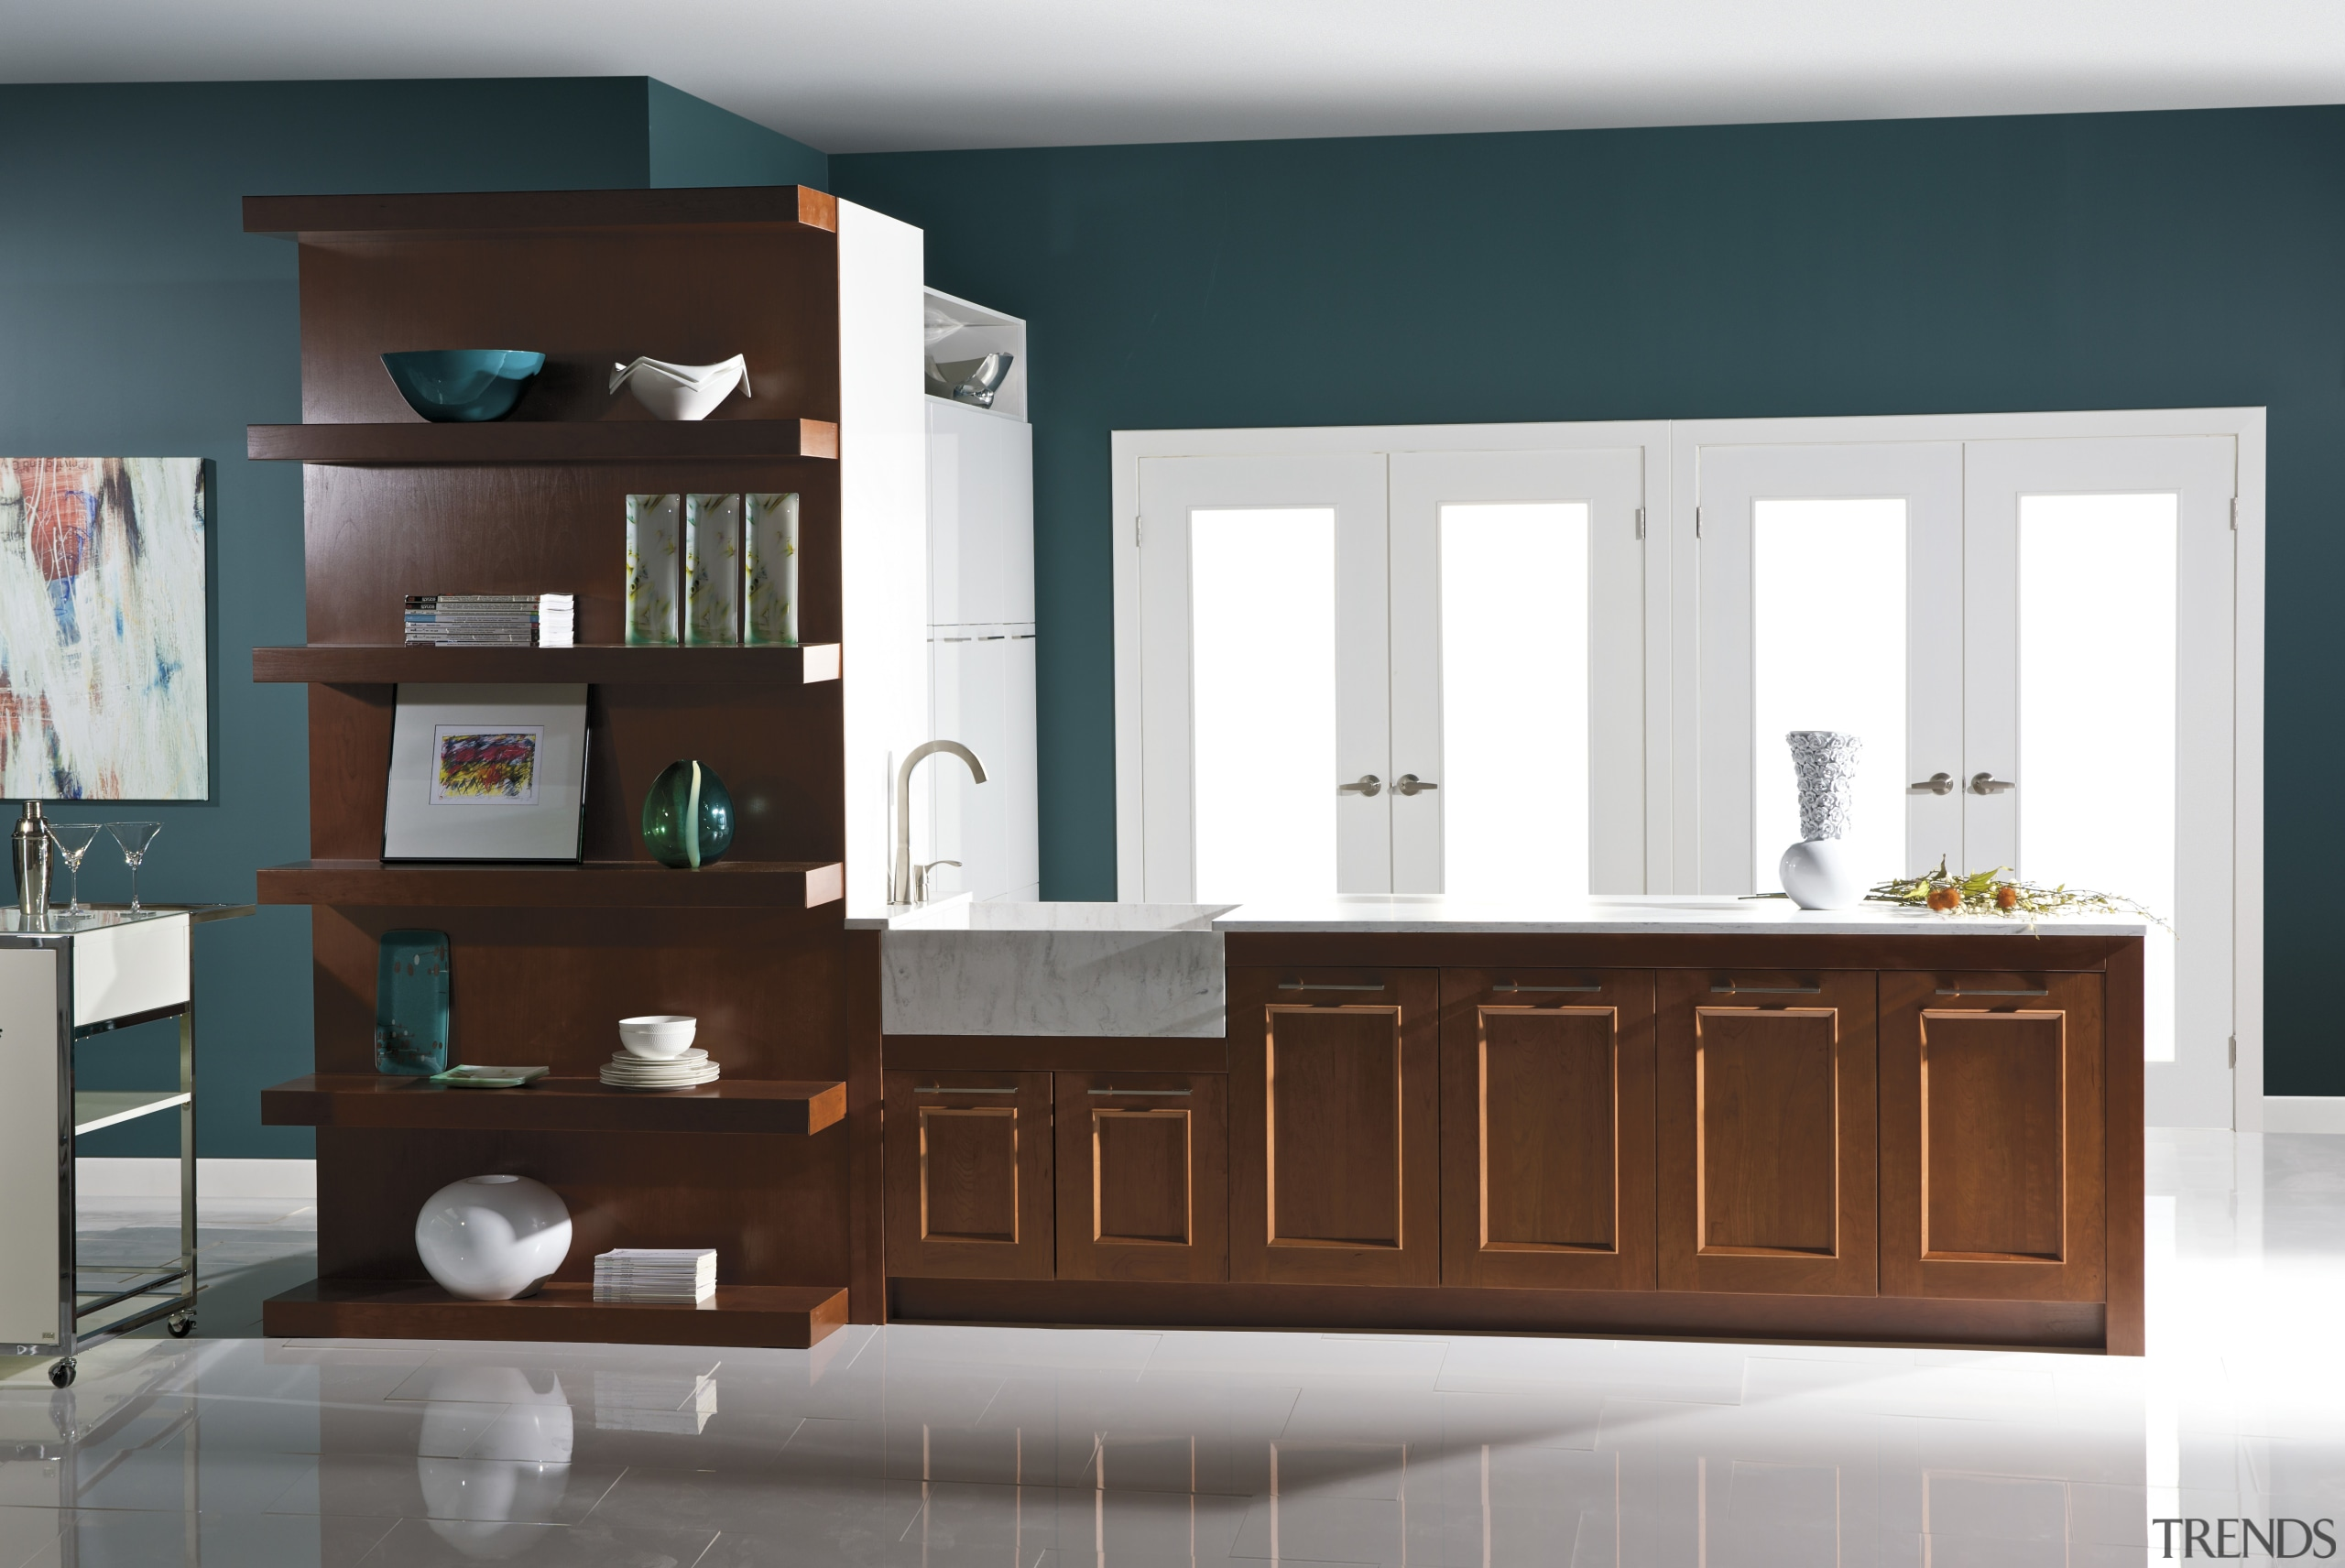 View of a kitchen which features cabinetry from cabinetry, chest of drawers, furniture, interior design, kitchen, product, product design, room, shelf, shelving, white